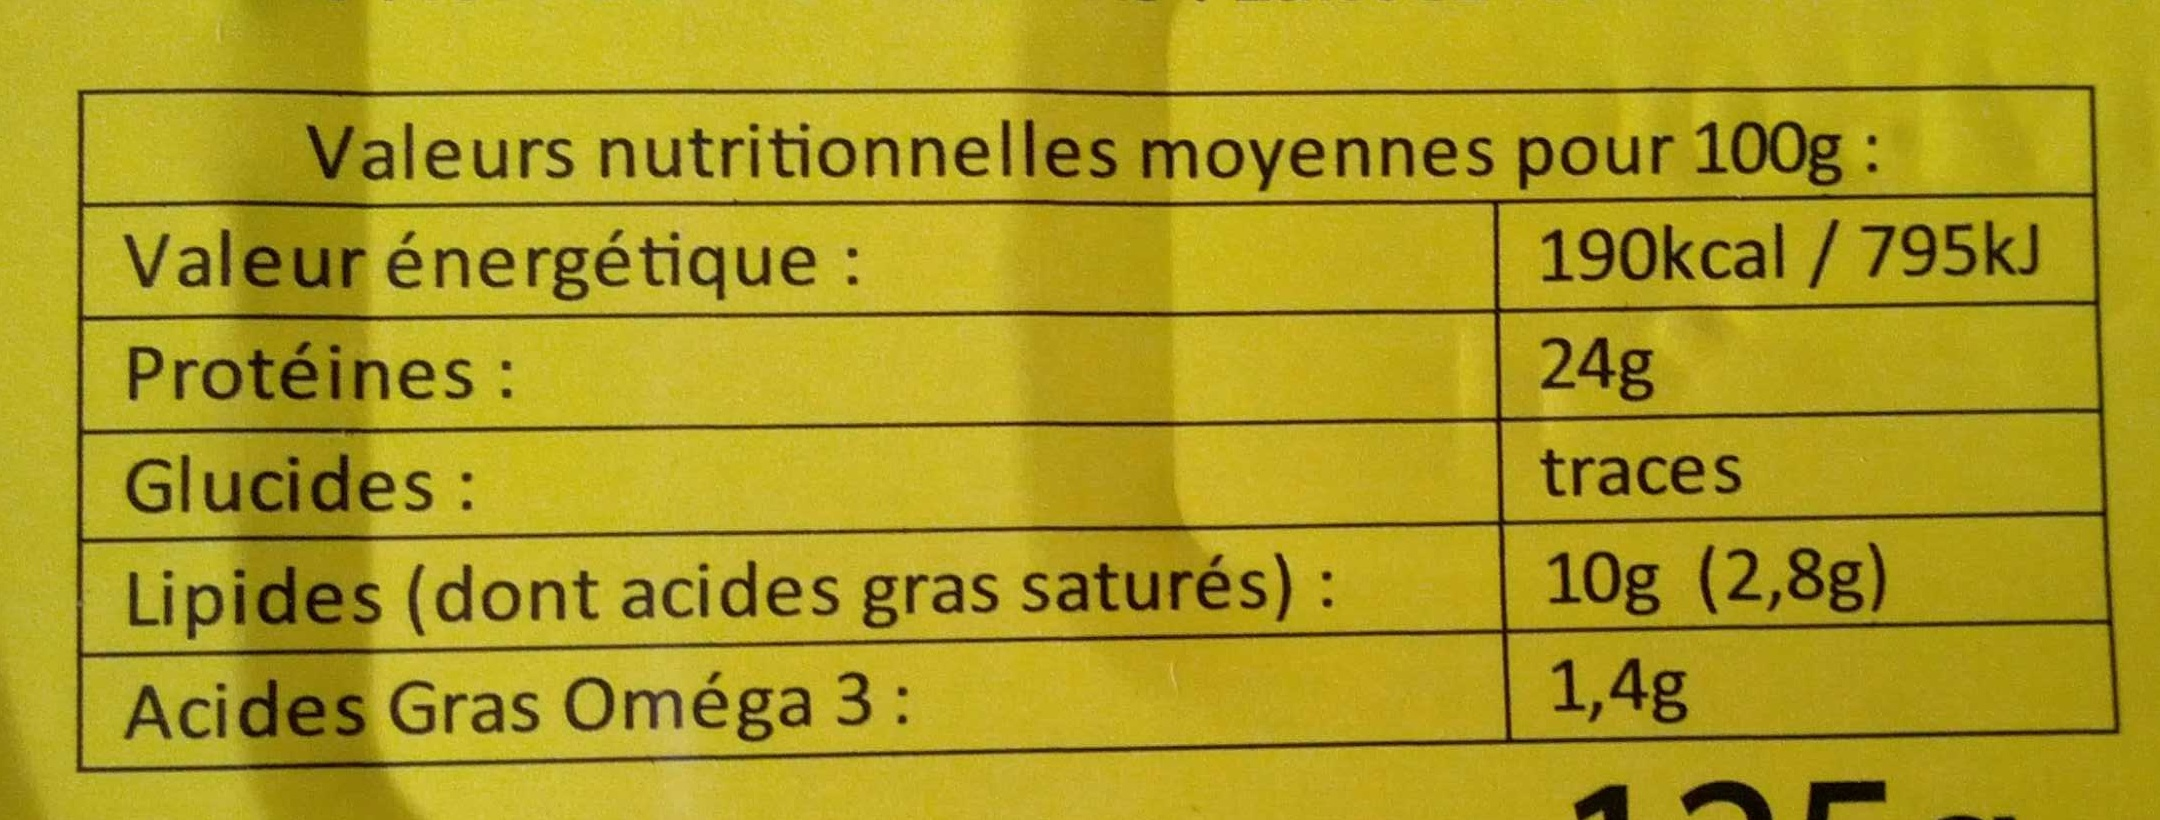 Sardines à l'huile de Tournesol - Nutrition facts